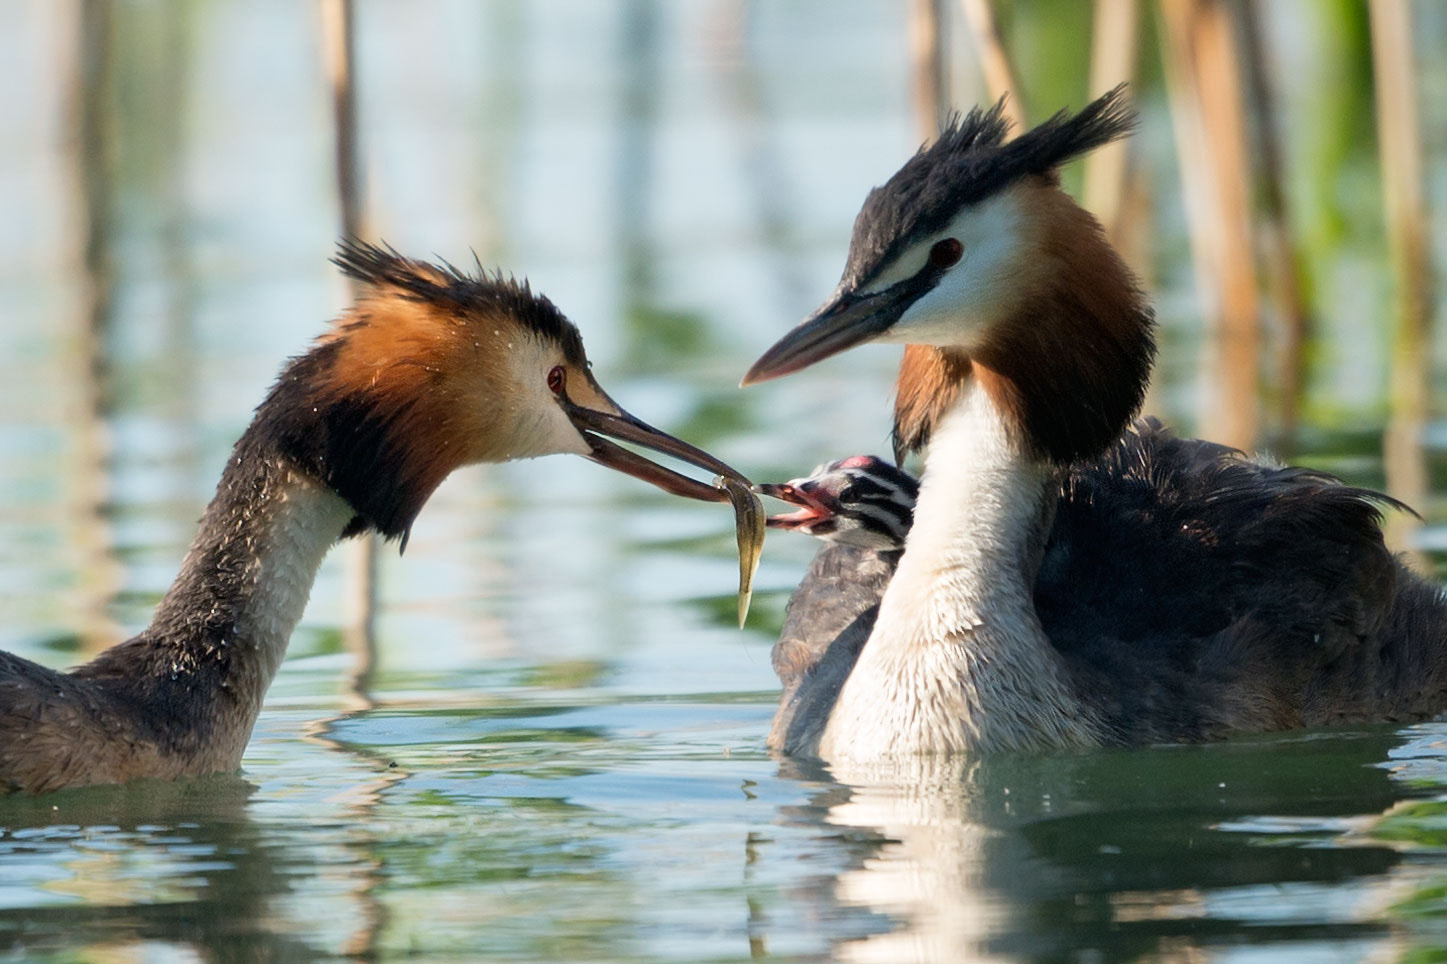 Photograph Haubentaucher - Fütterung | Great crested grebe - feeding (Close-Up) by Franz Engels on 500px